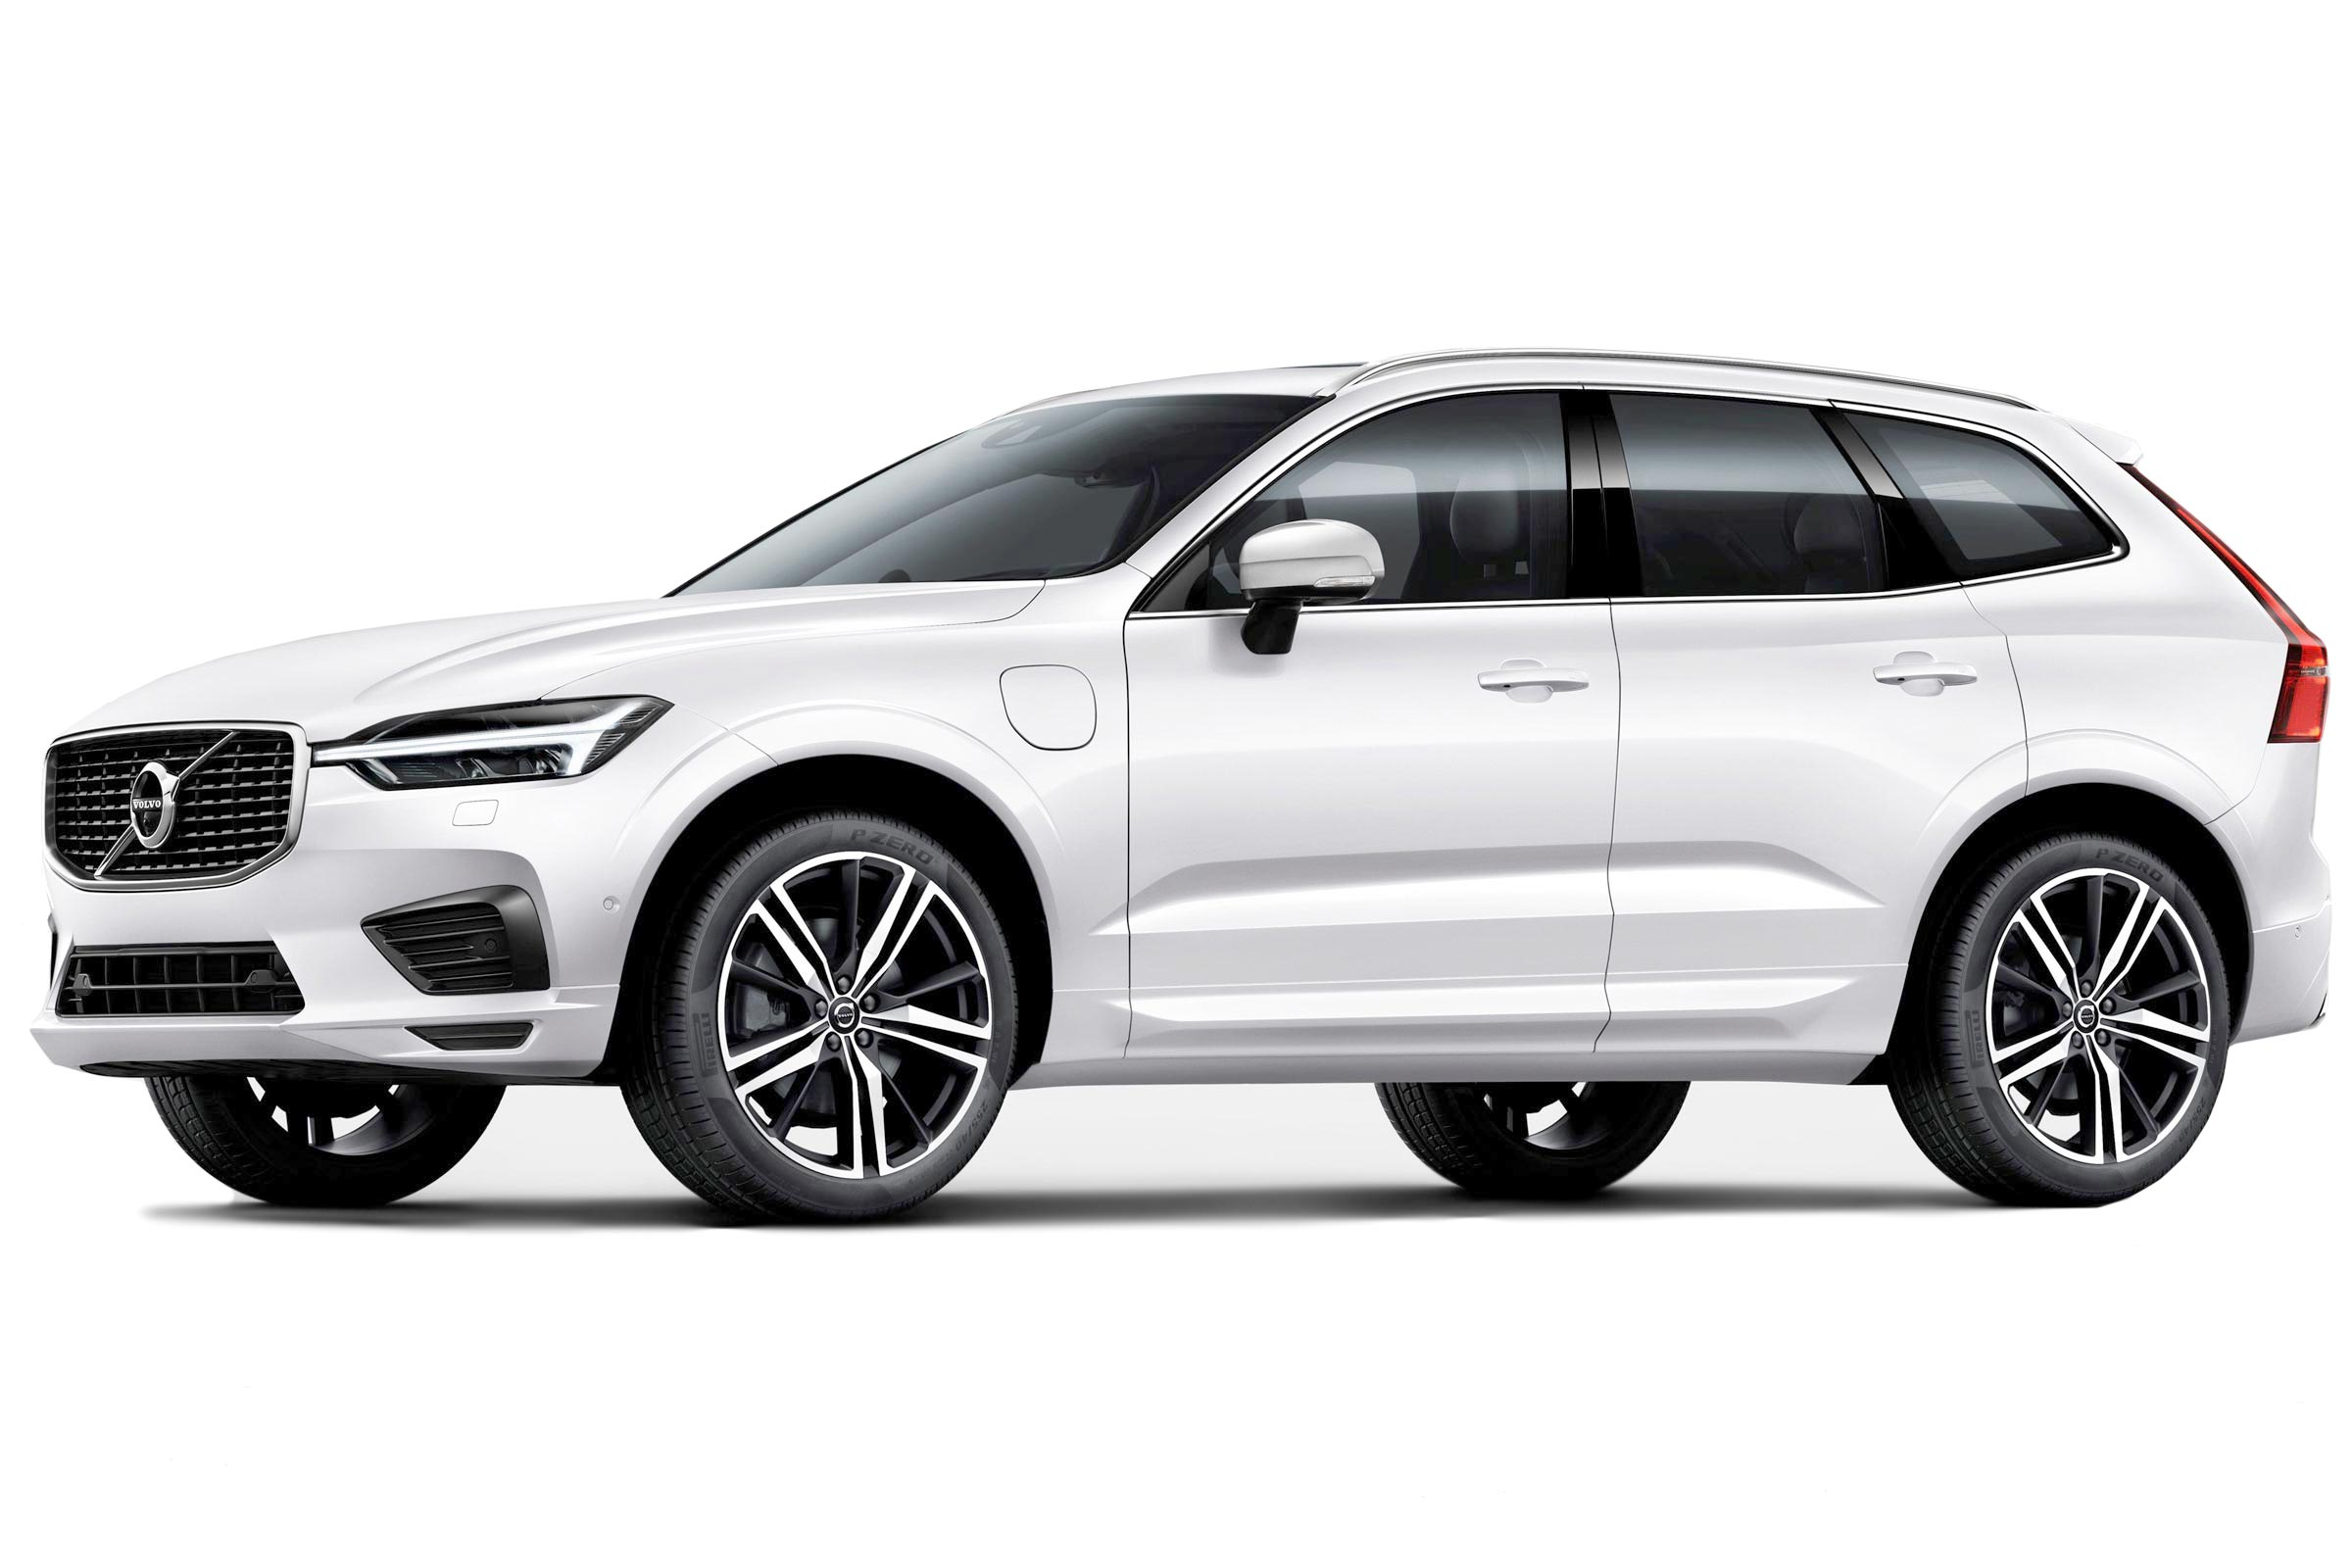 Volvo XC60 T8 Twin Engine hybrid - Engines. drive & performance 2020 review   Carbuyer